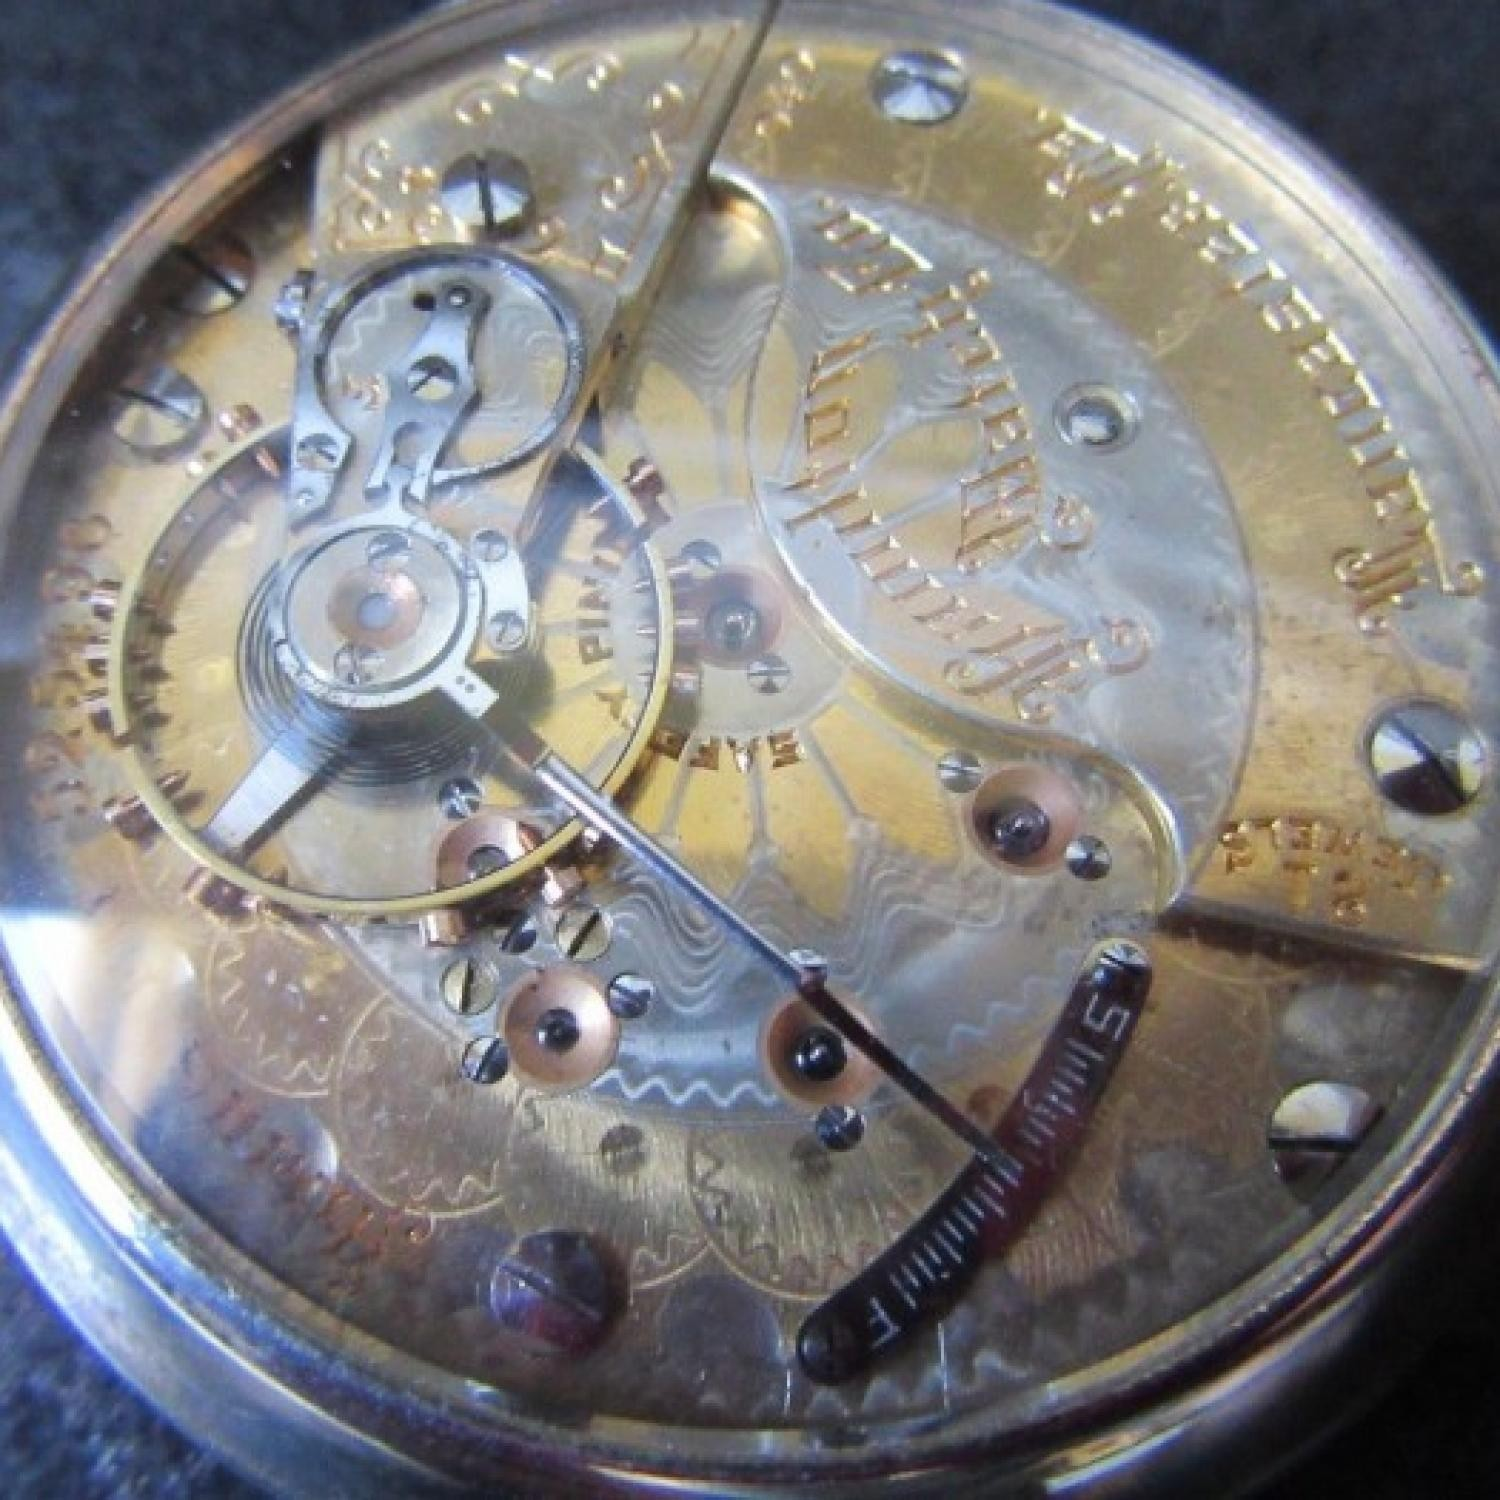 Image of Hamilton 940 #525496 Movement